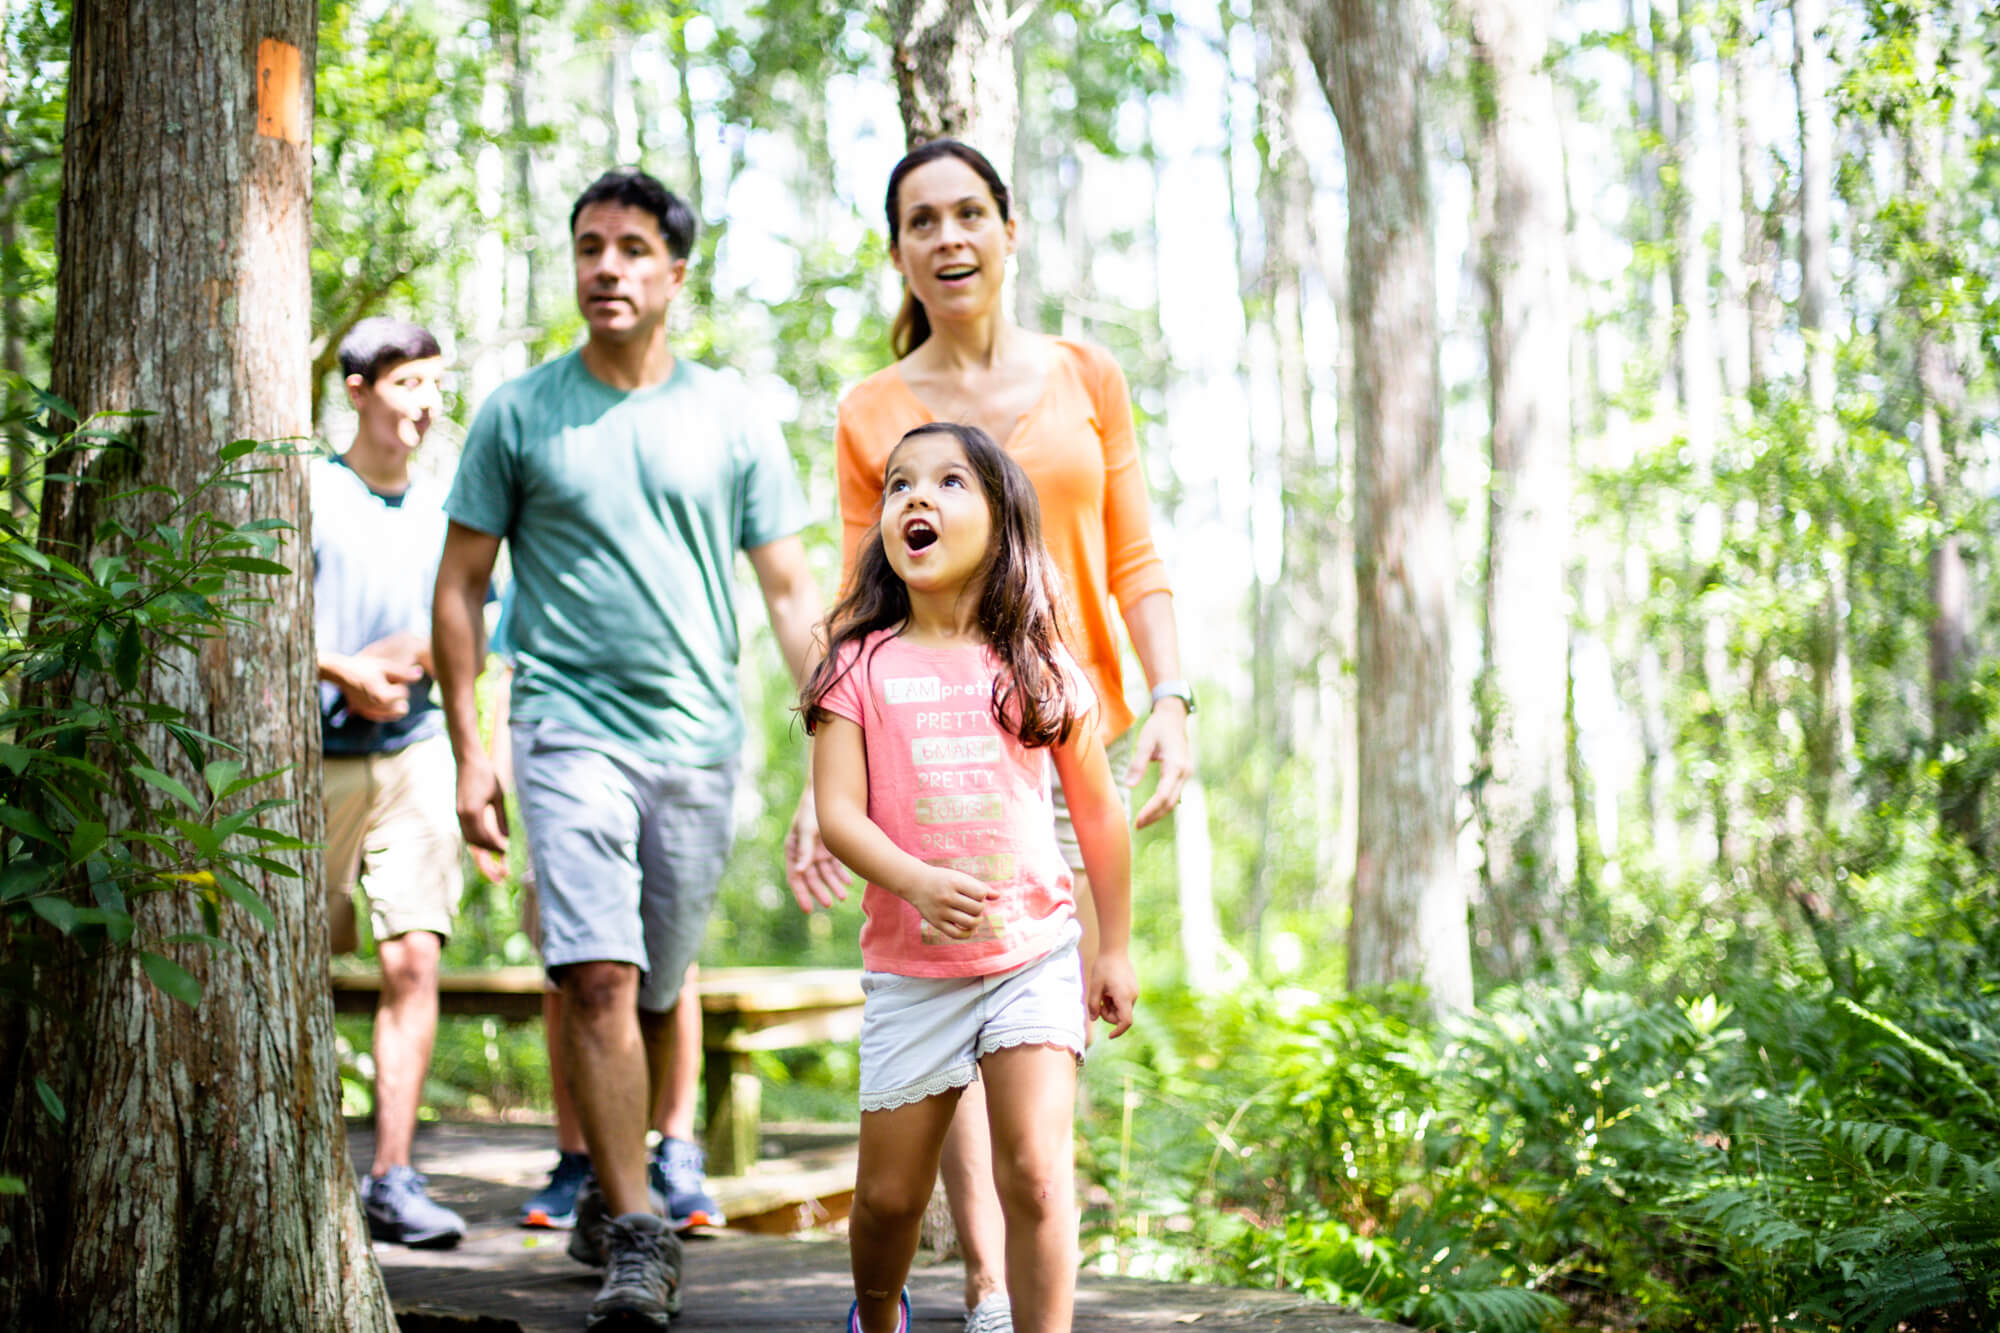 Orlando family enjoying outdoor recreation